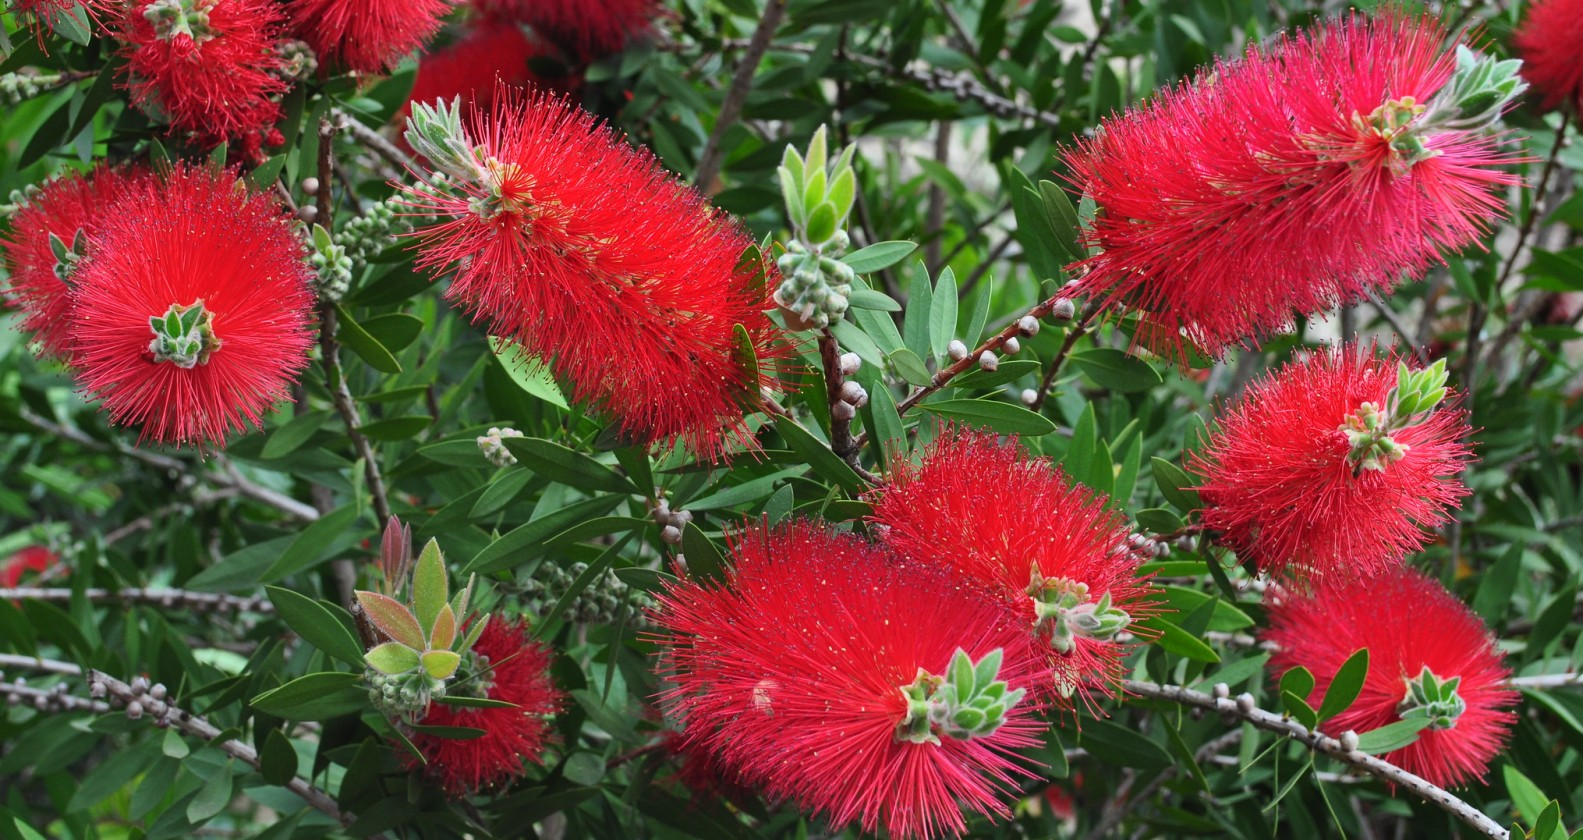 Bottlebrush, one of the true red flowering Phoenix landscaping plants.